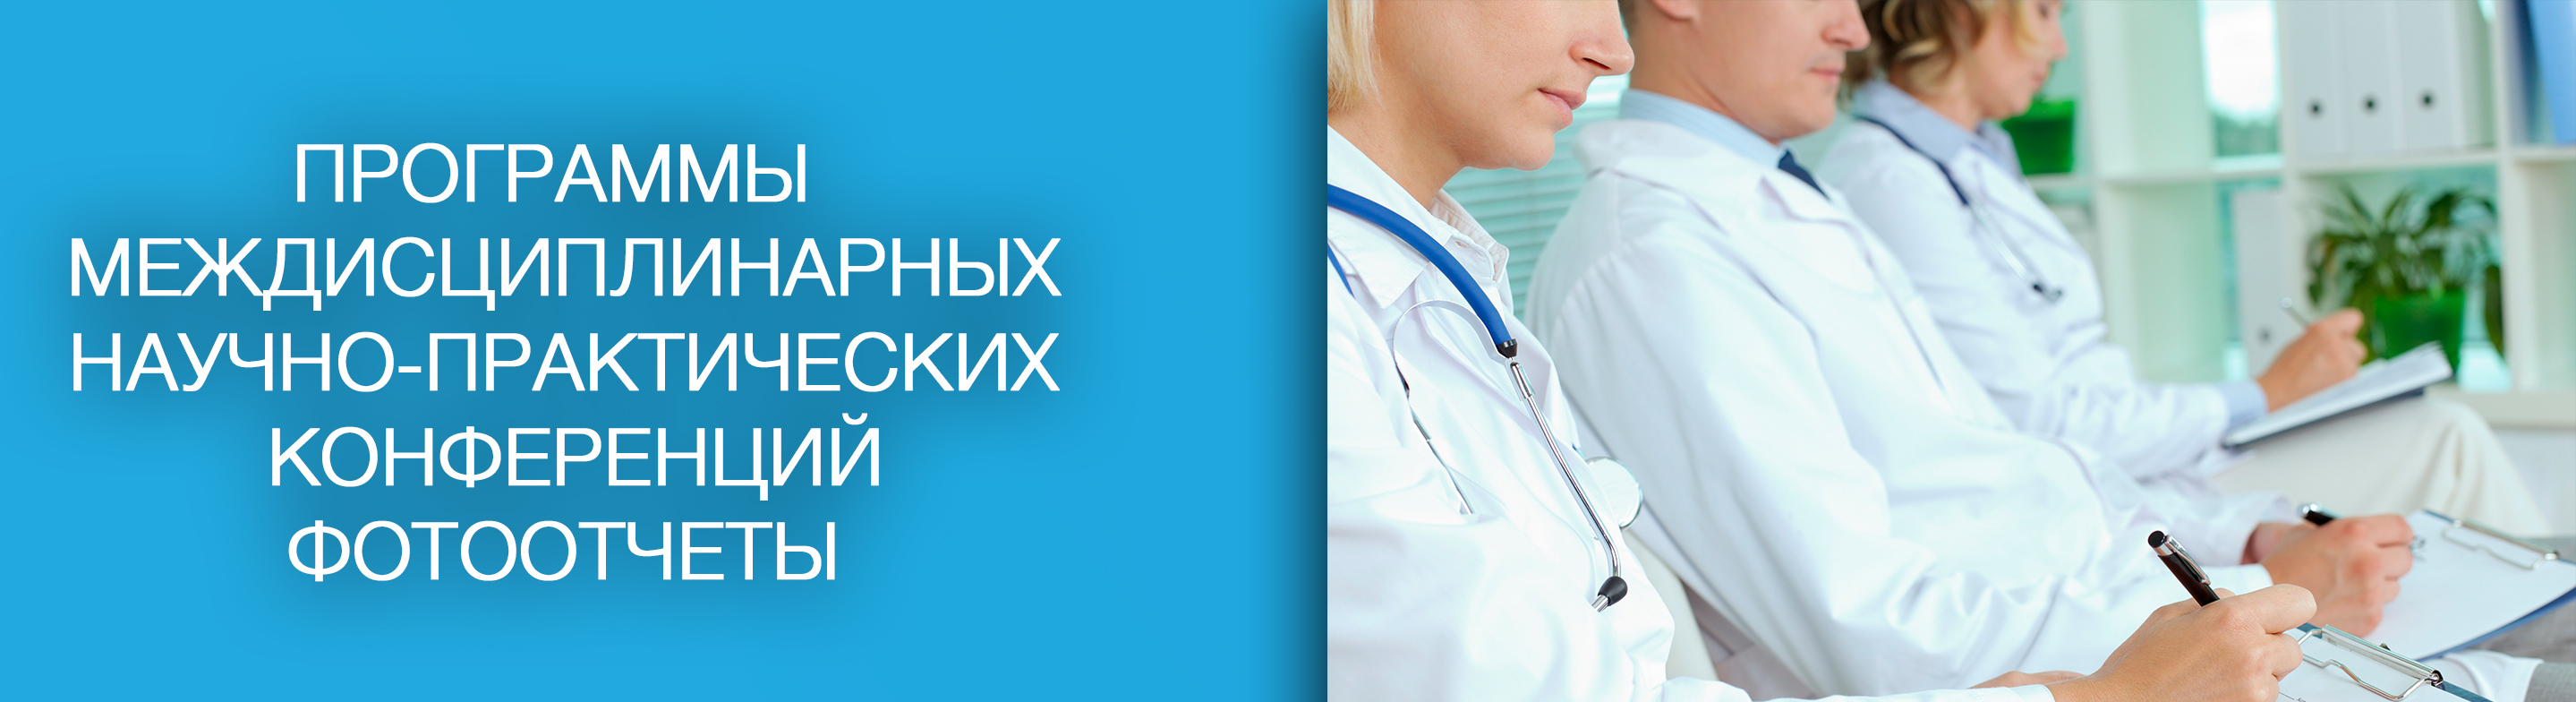 //nb-clinic.ru/wp-content/uploads/2018/01/nbc.jpg